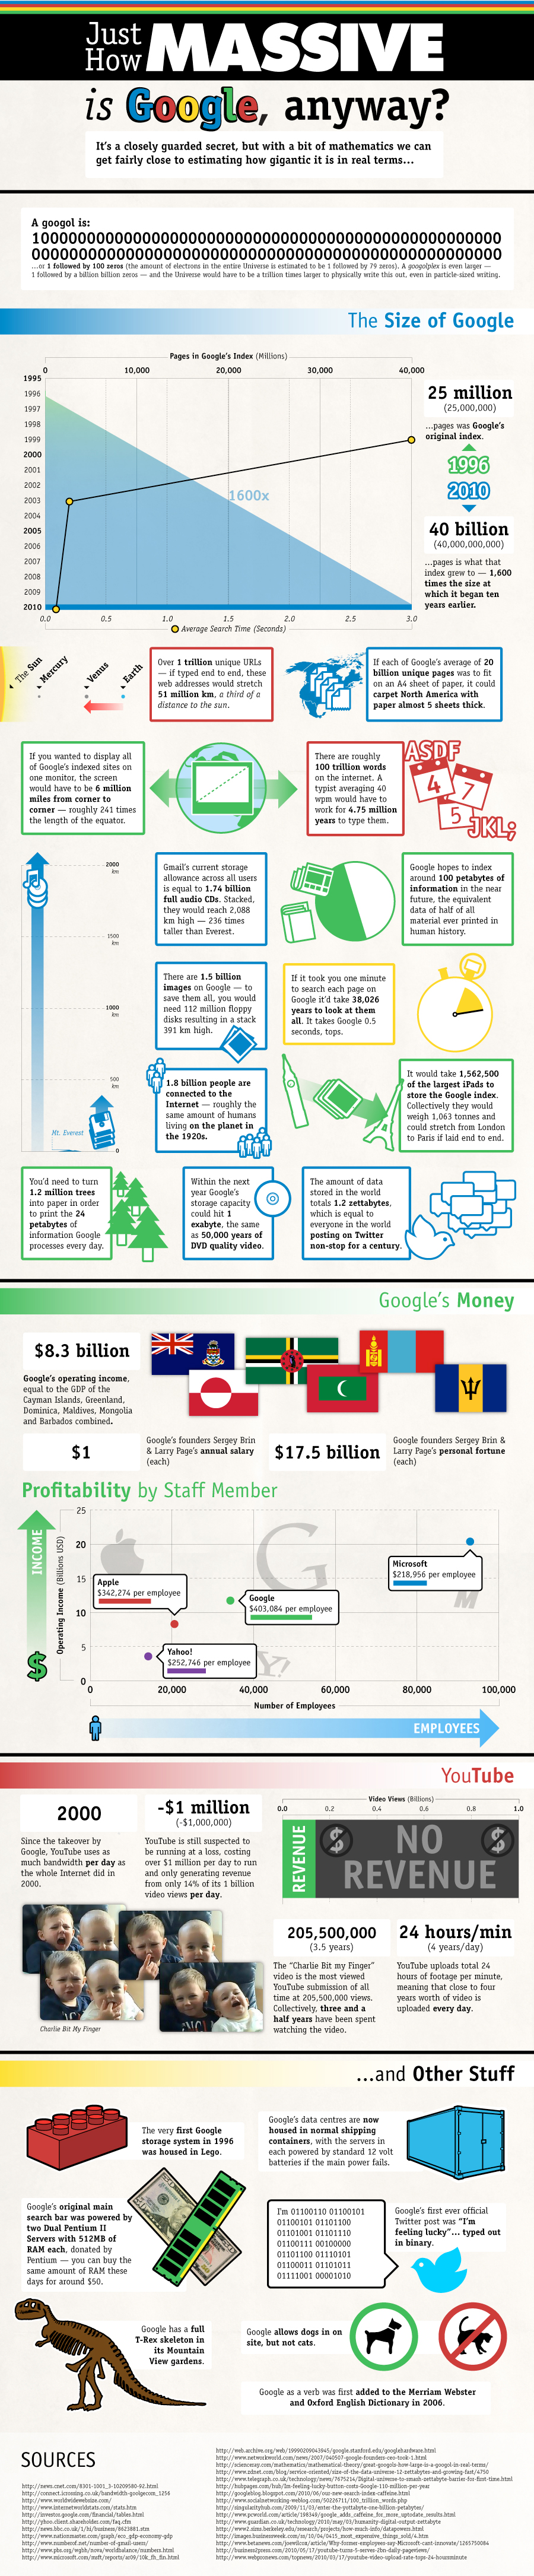 Google by the Numbers.jpeg